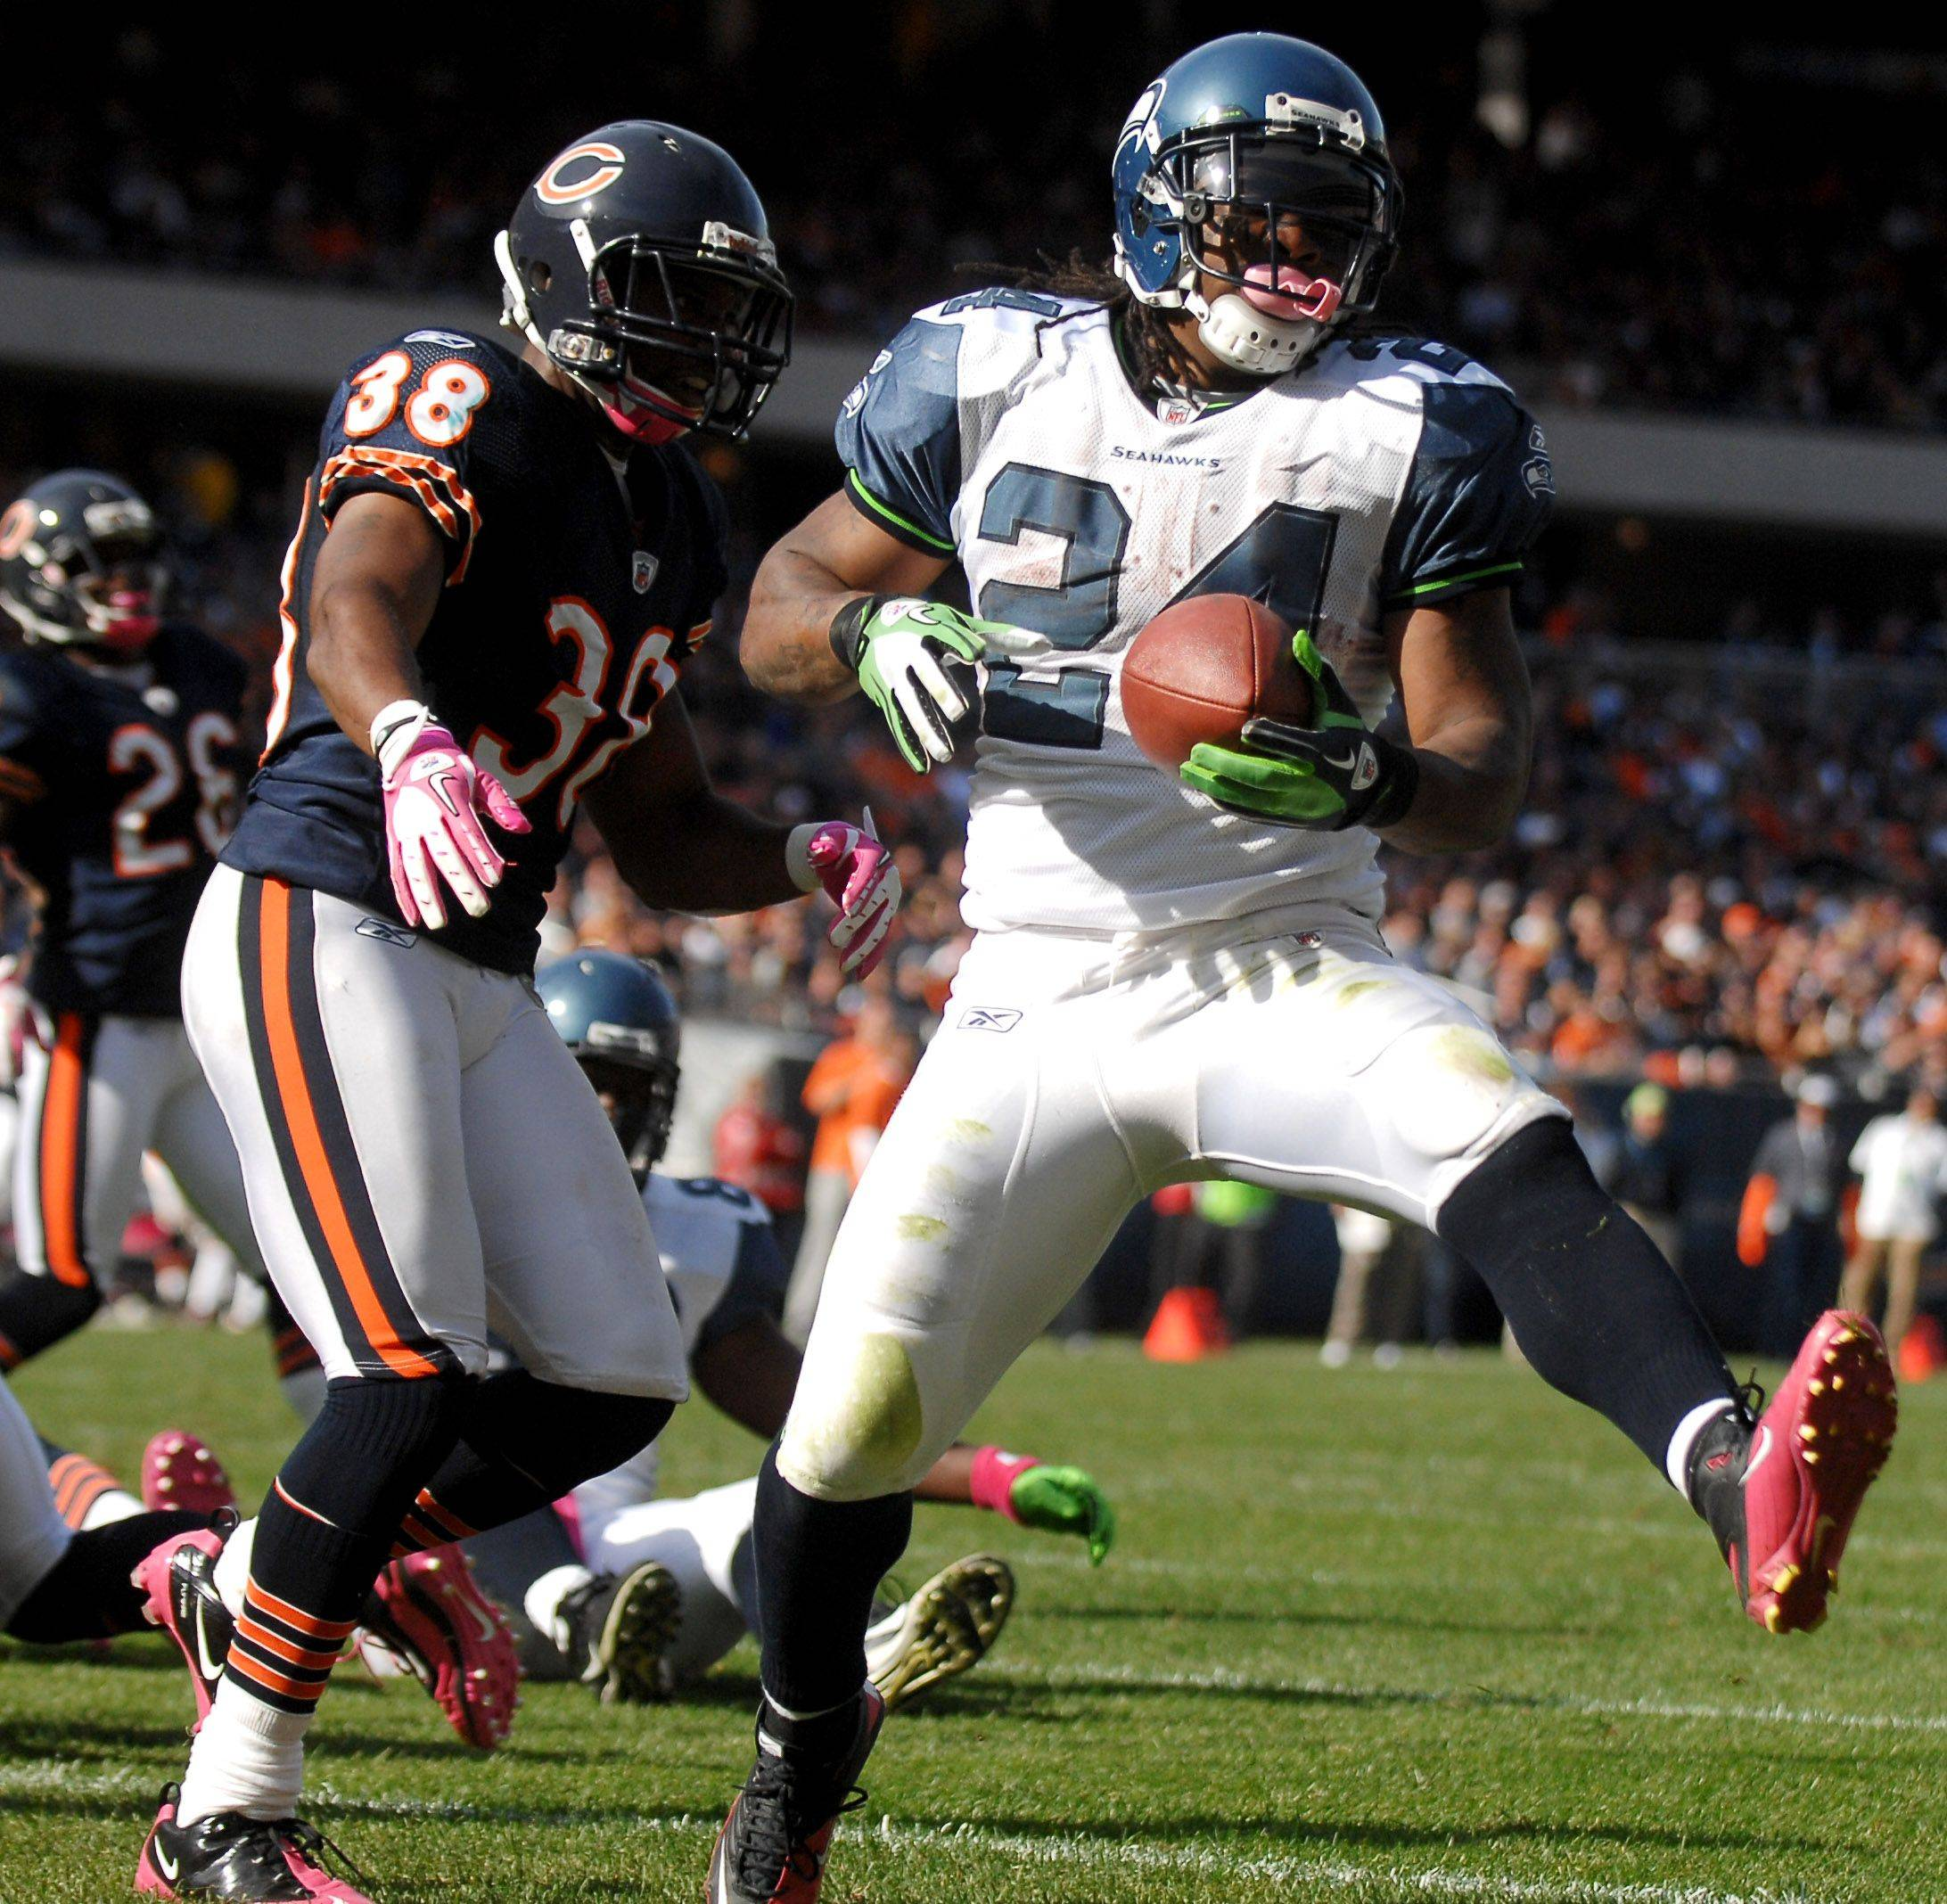 Seattle Seahawks running back Marshawn Lynch waltzes into the end zone for a TD.